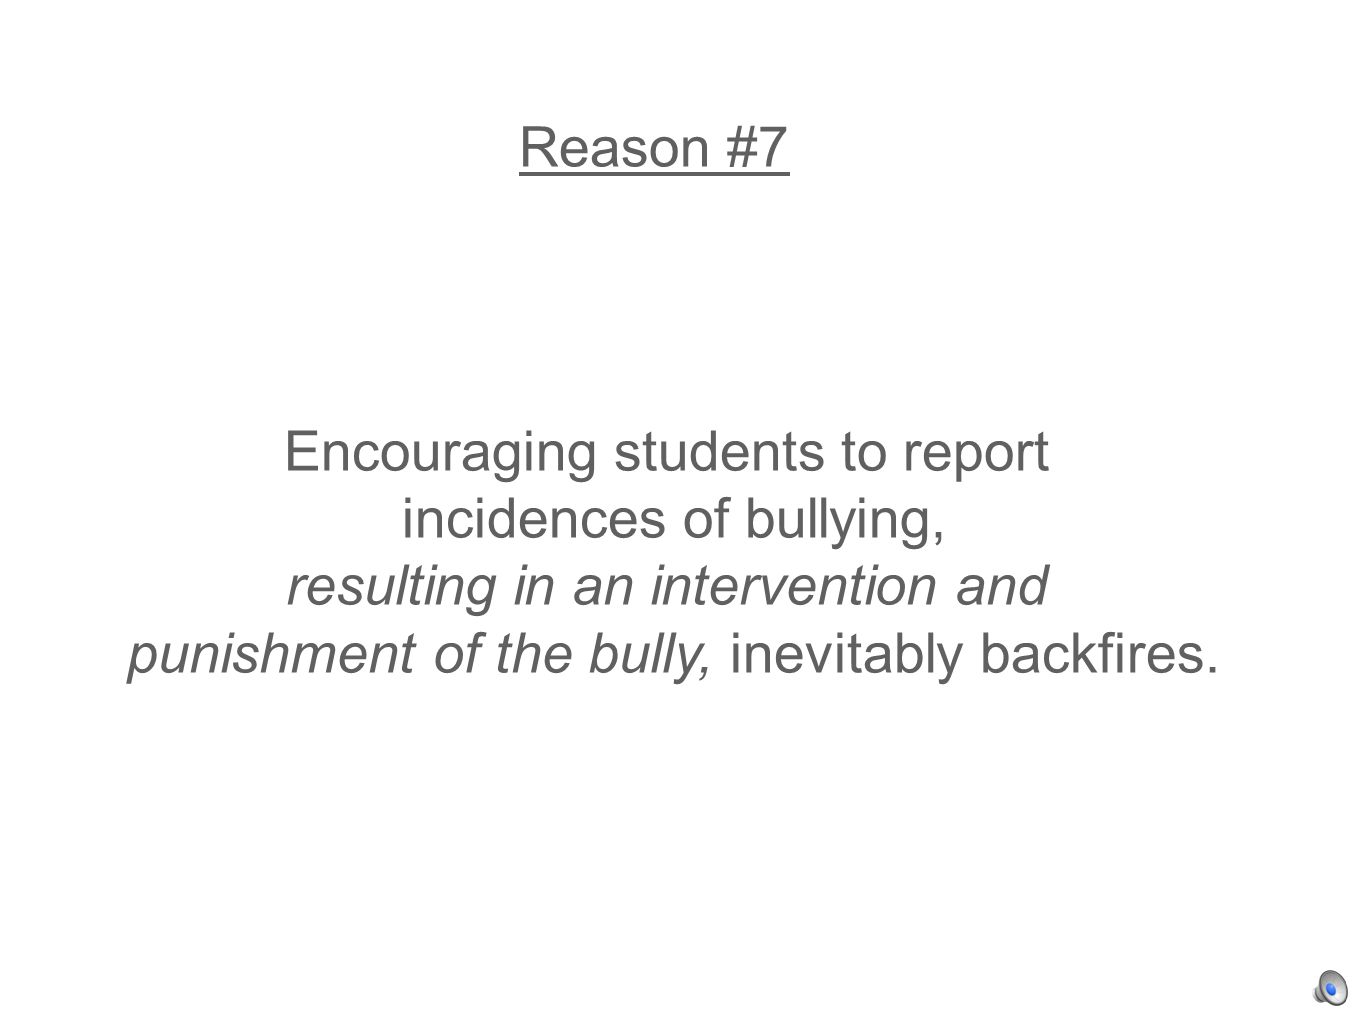 Reason #7 Encouraging students to report incidences of bullying, resulting in an intervention and punishment of the bully, inevitably backfires.